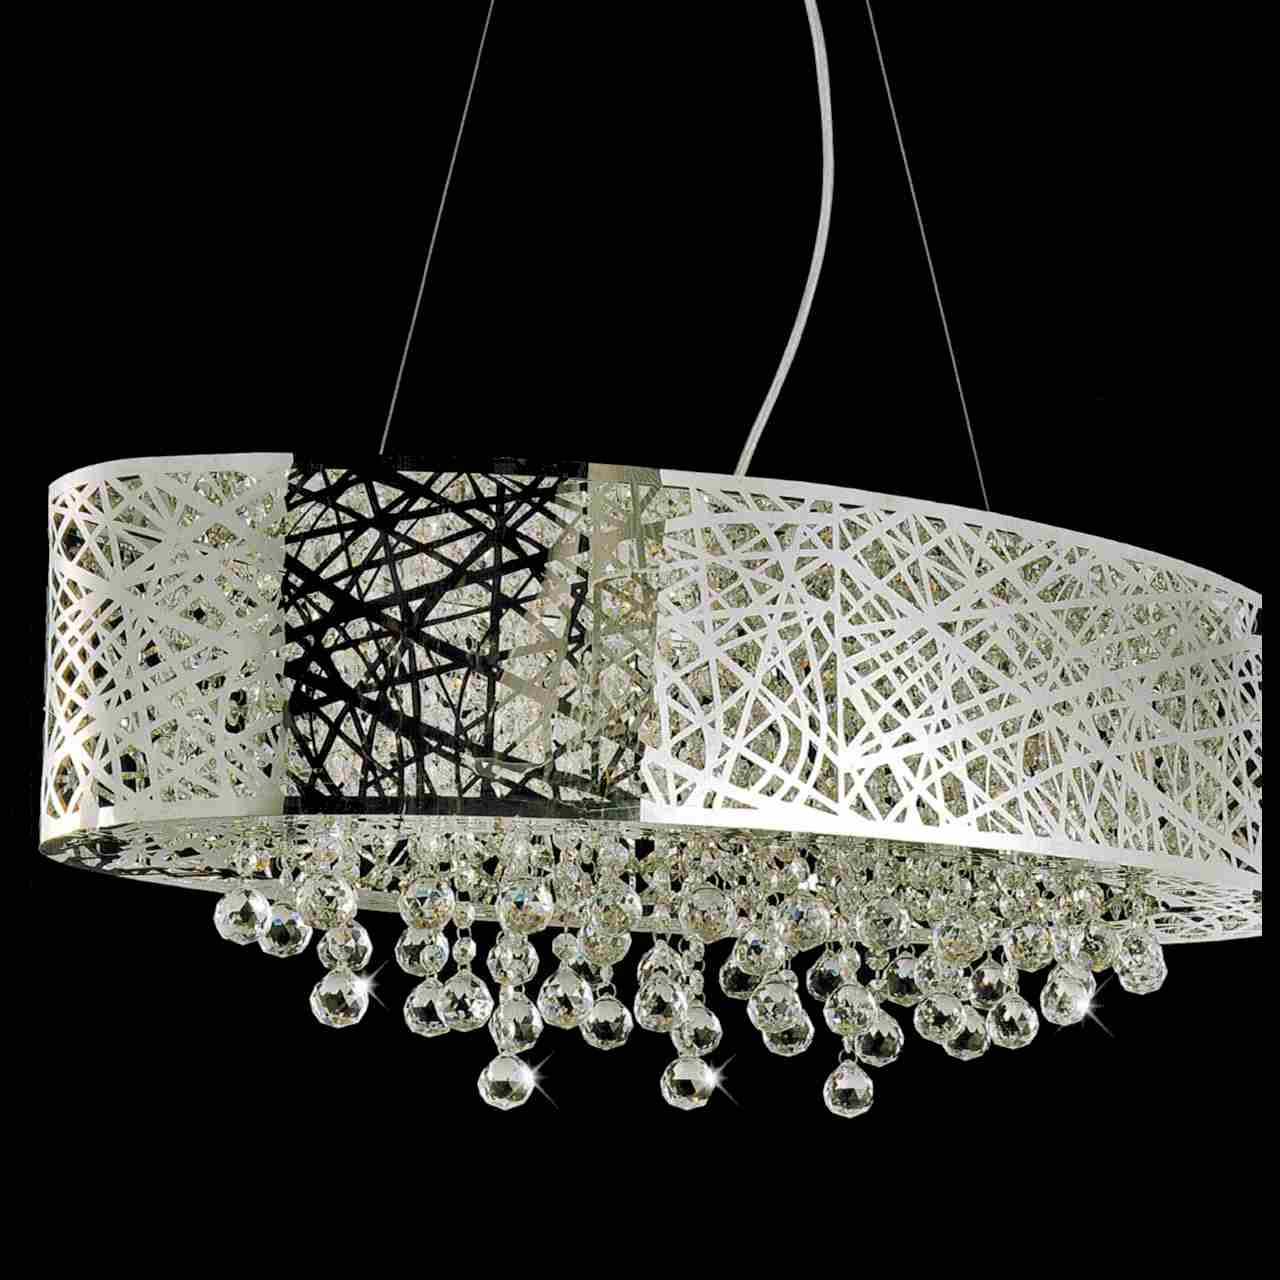 pendant in lighting chandelier dar image ambassador light chrome satin